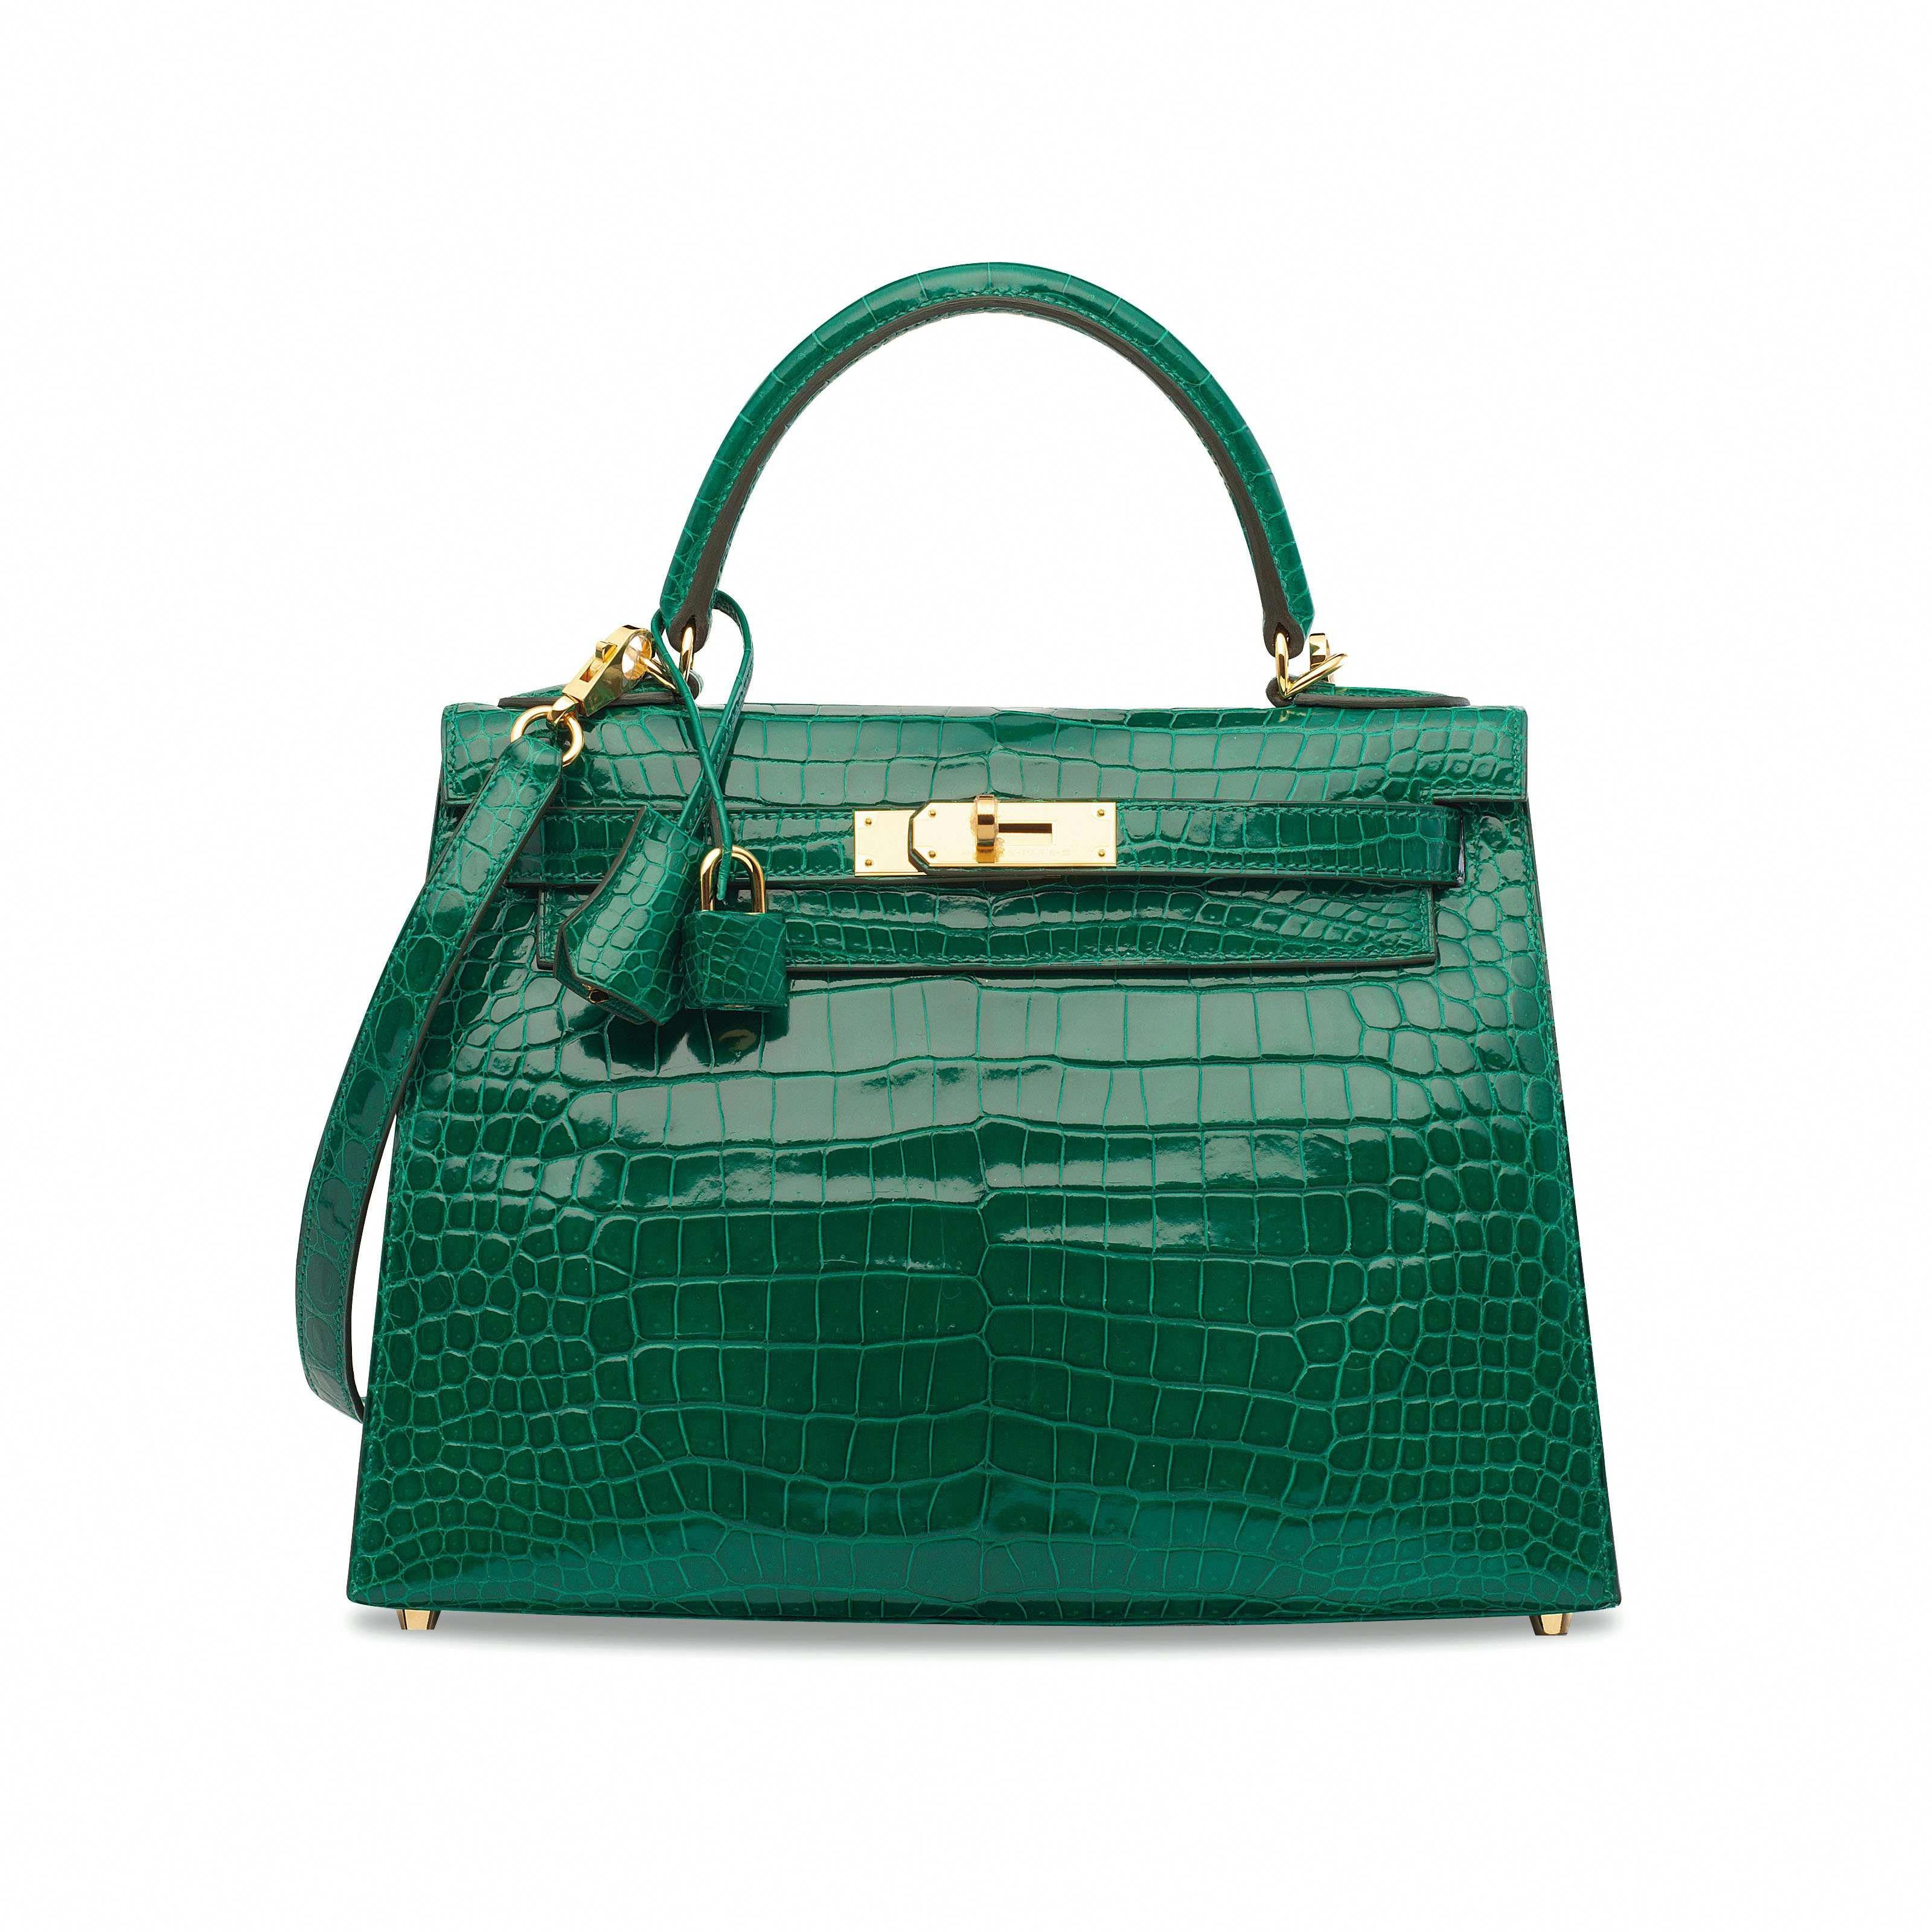 6c16af4b2093 A SHINY VERT ÉMERAUDE POROSUS CROCODILE SELLIER KELLY 28 WITH GOLD HARDWARE